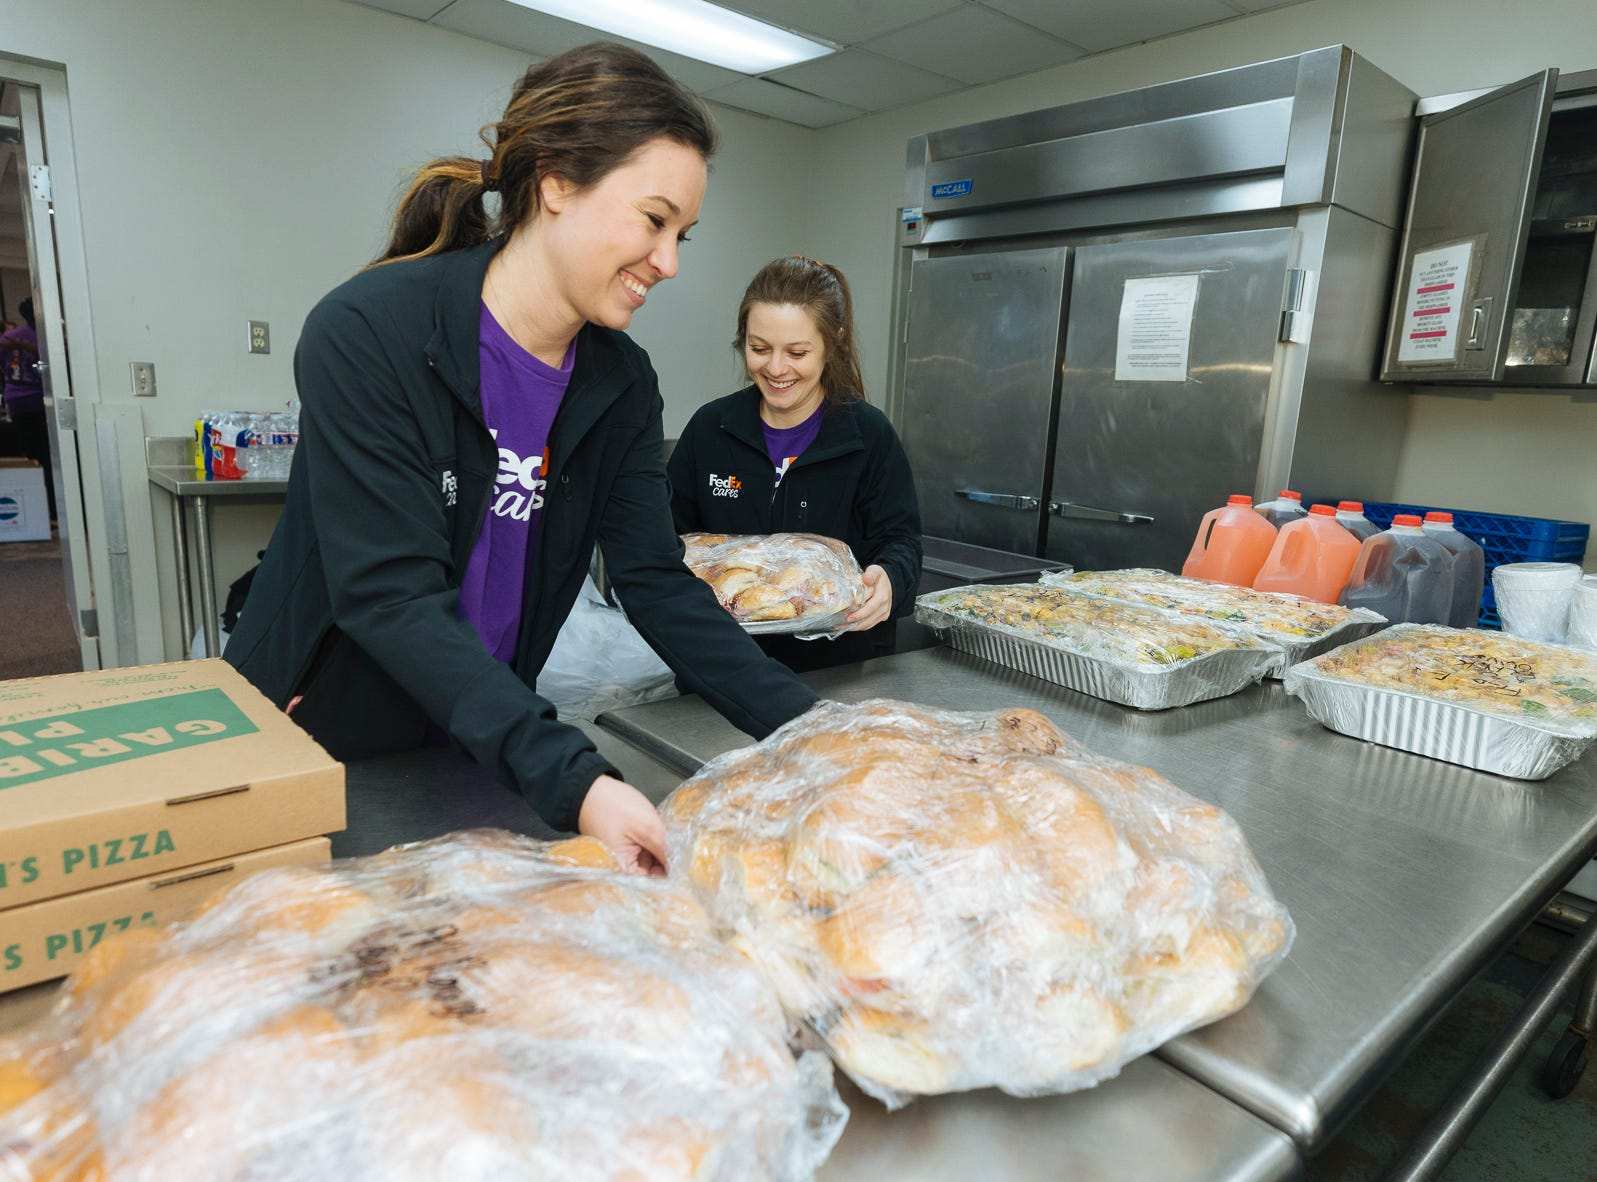 FedEx volunteers prepare lunch for fellow team members nearing the end of the assembly o 3,600 hygiene kits for relief from Hurricanes Florence and  Michael